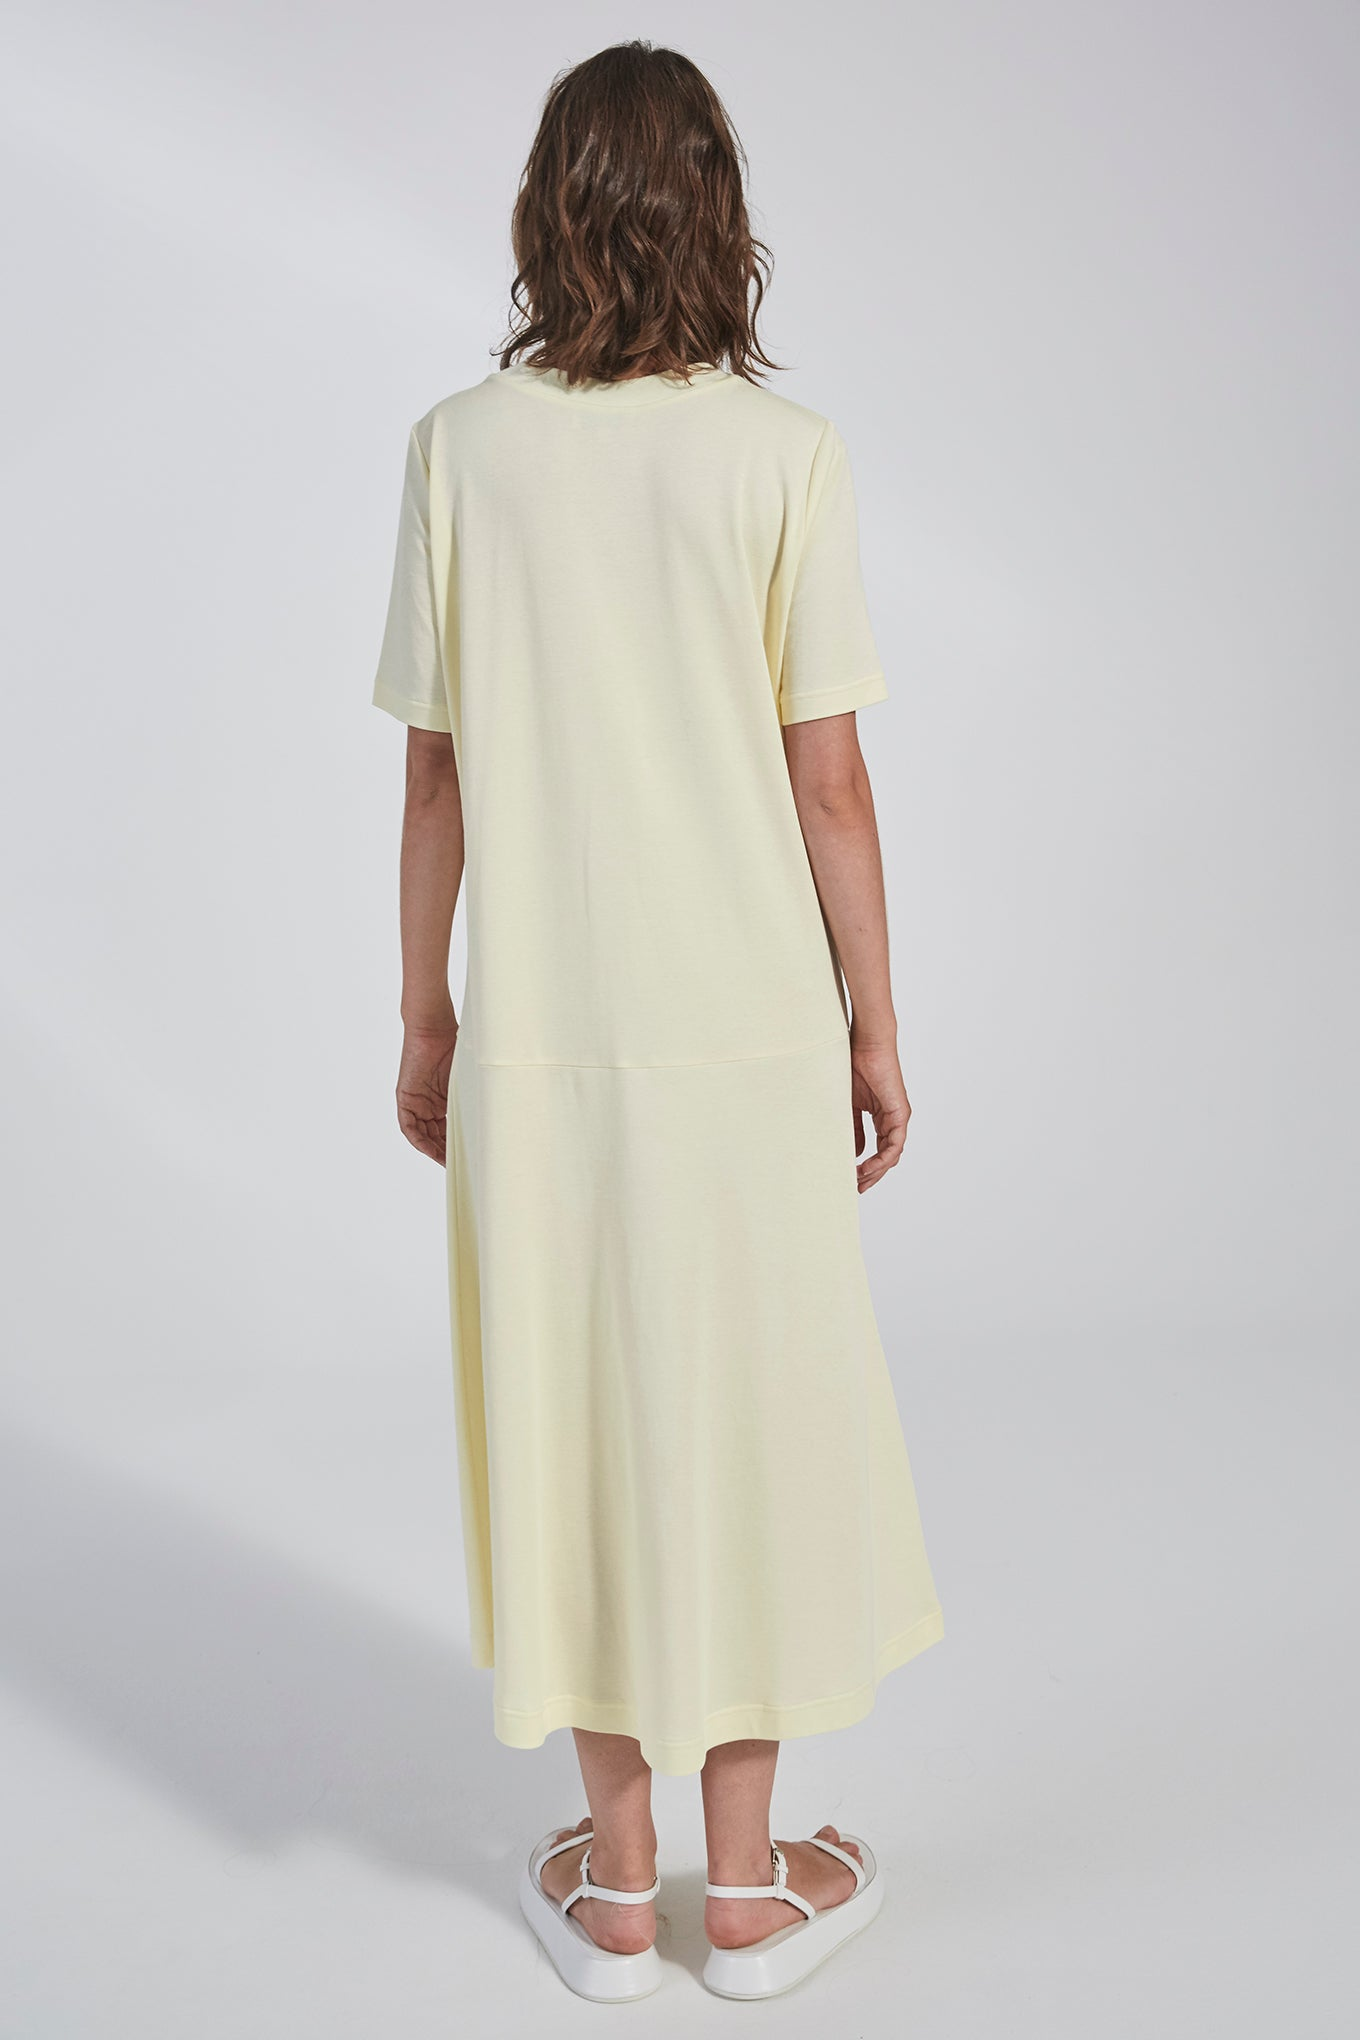 Holden Jersey Dress - Lemon - Silk/Cotton Jersey